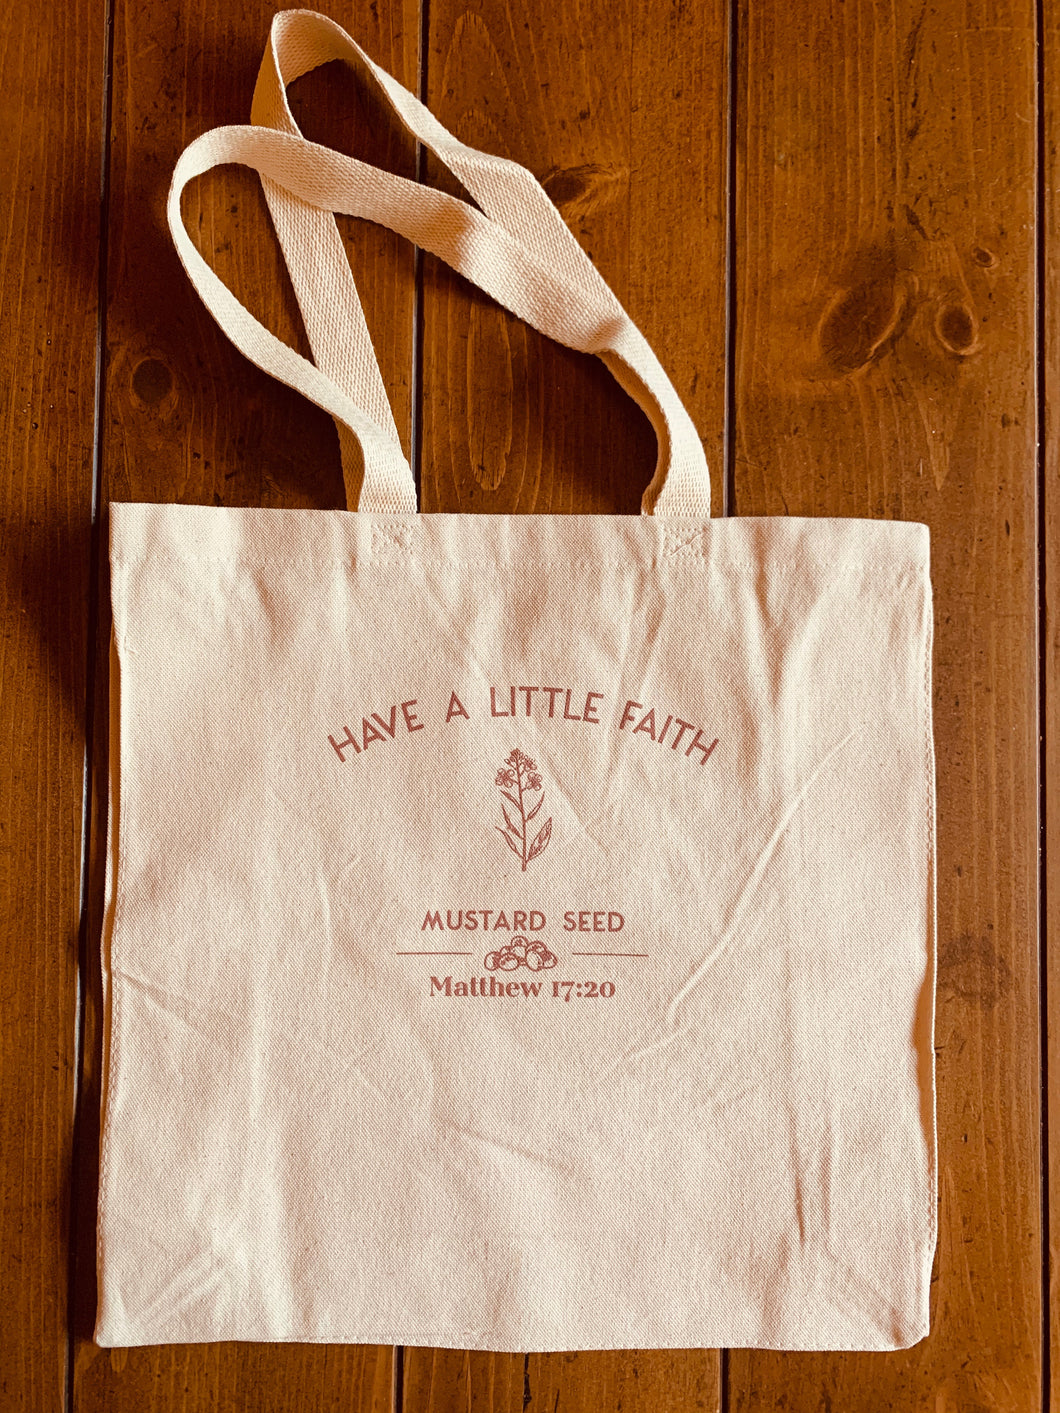 Have a Little Faith Tote Bag